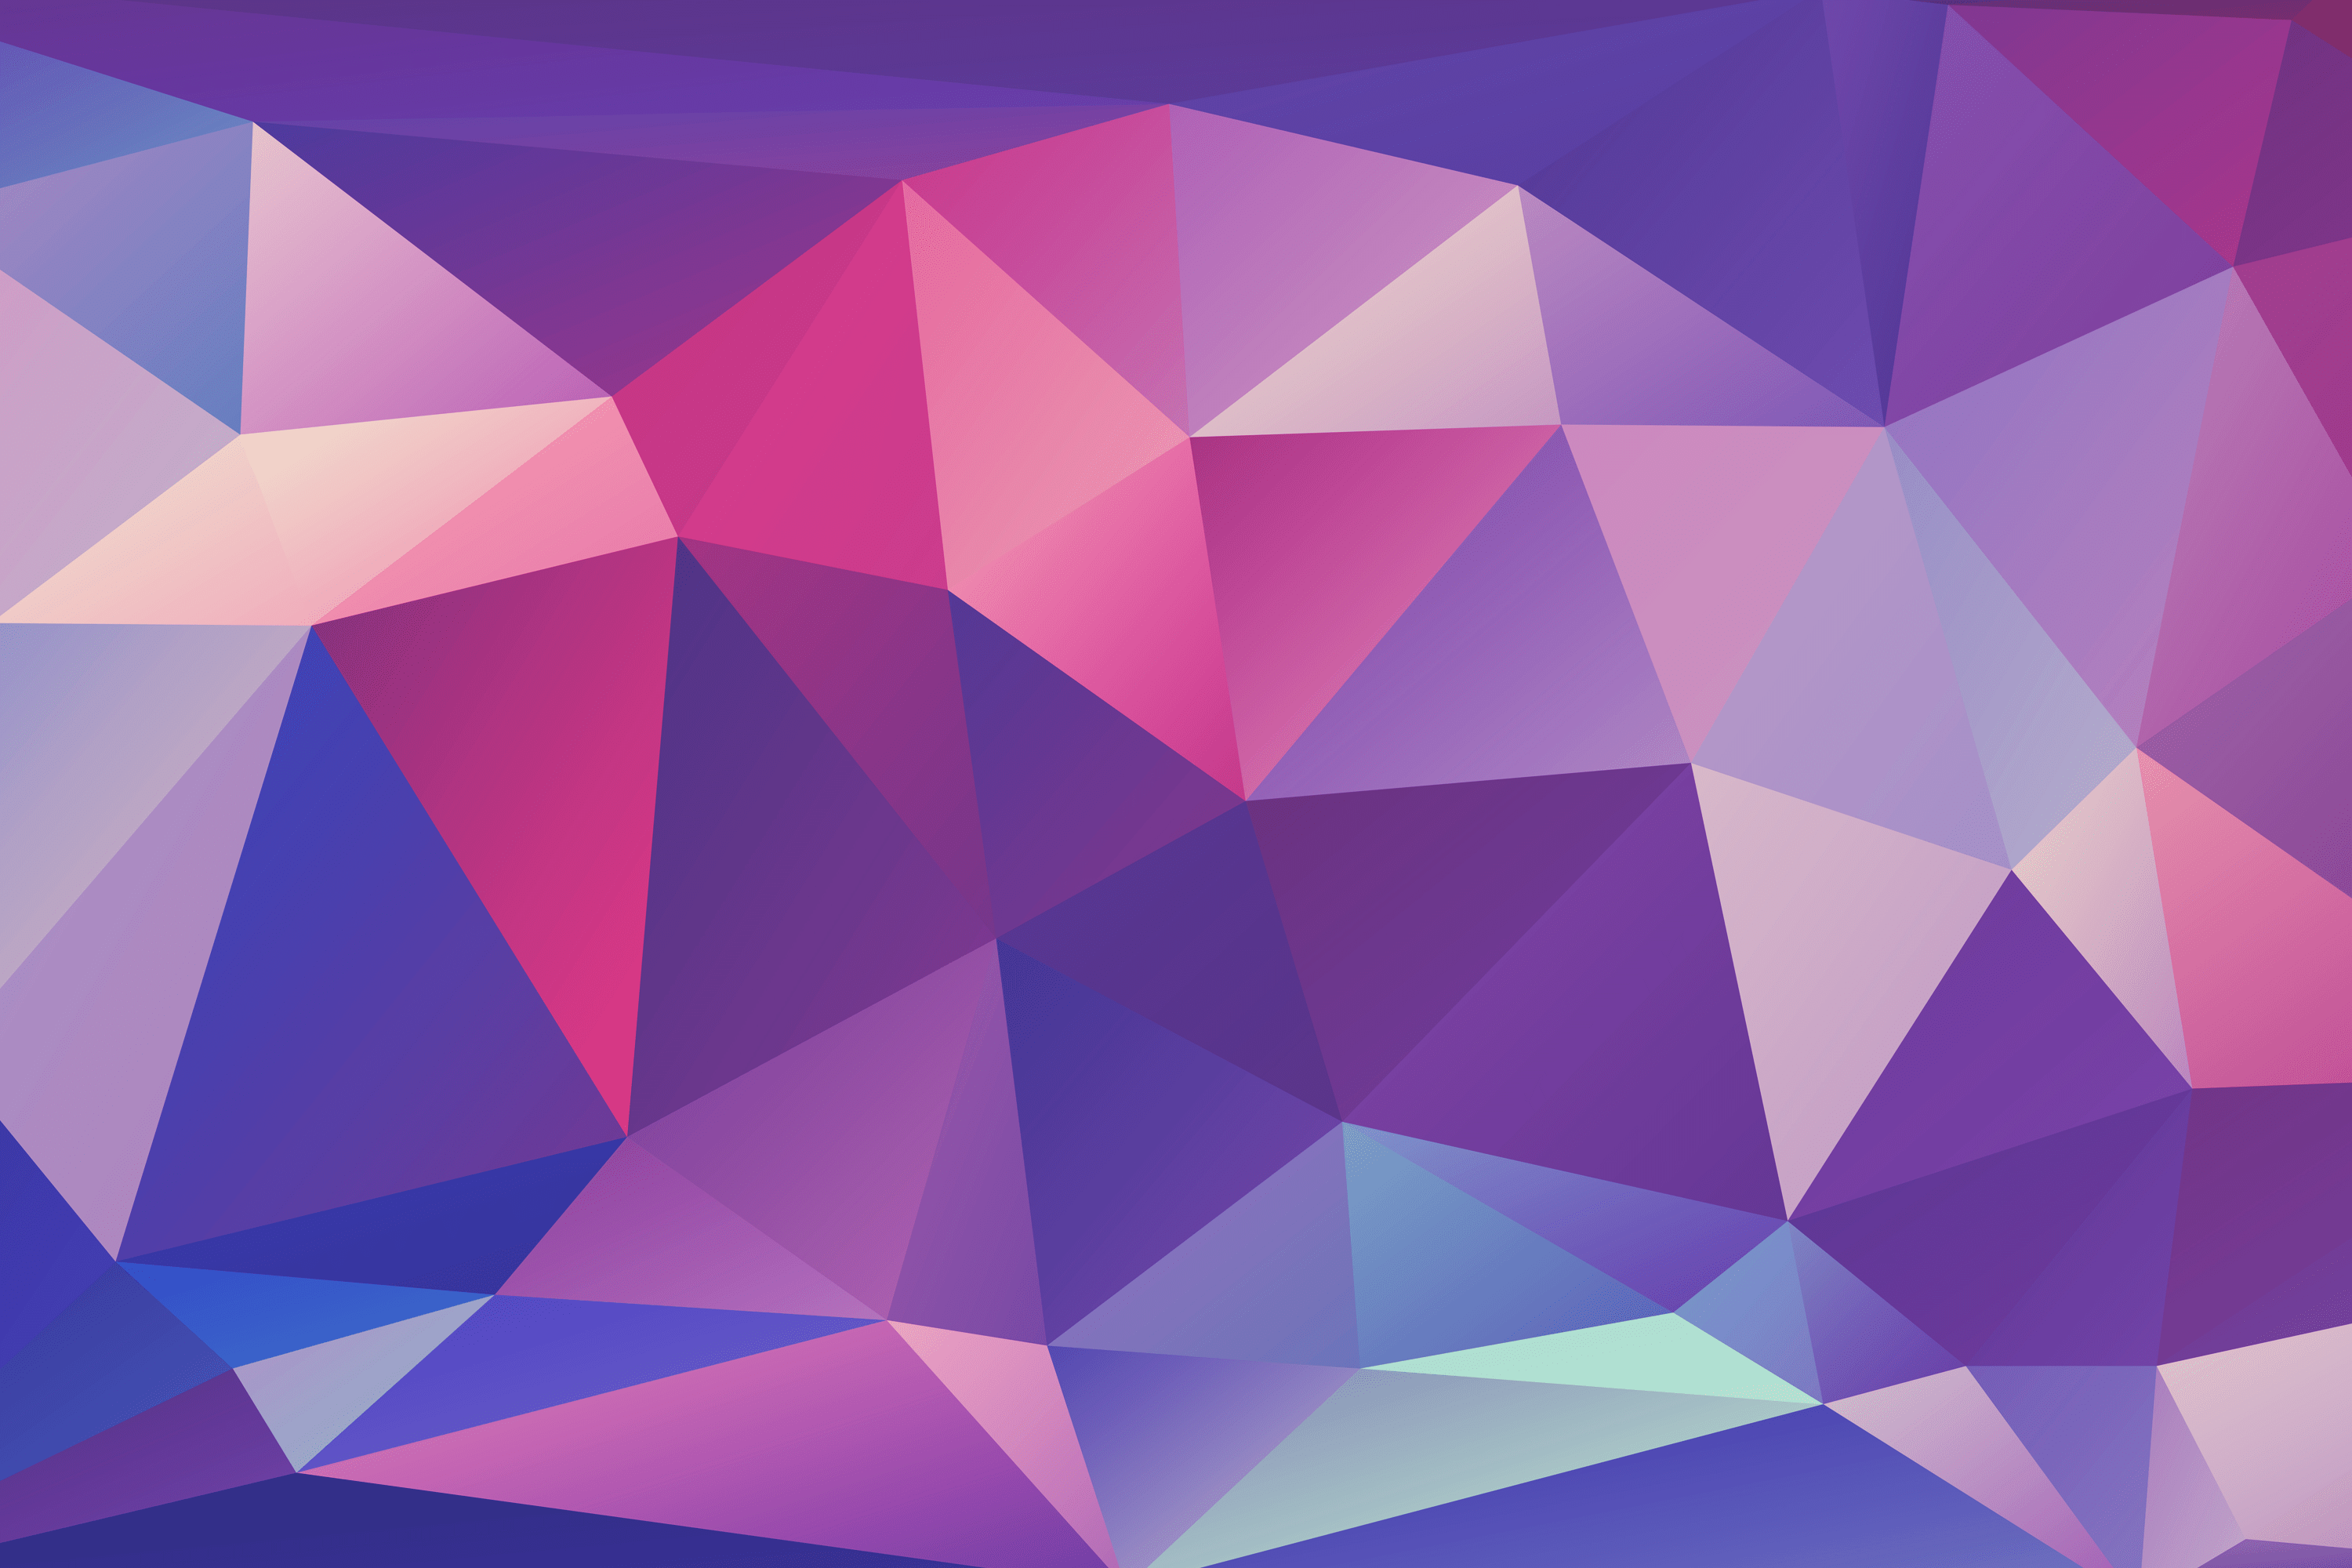 Low Poly Iphone X Wallpaper Multicolor Polygon Wallpapers For Iphone Ipad Or Desktop